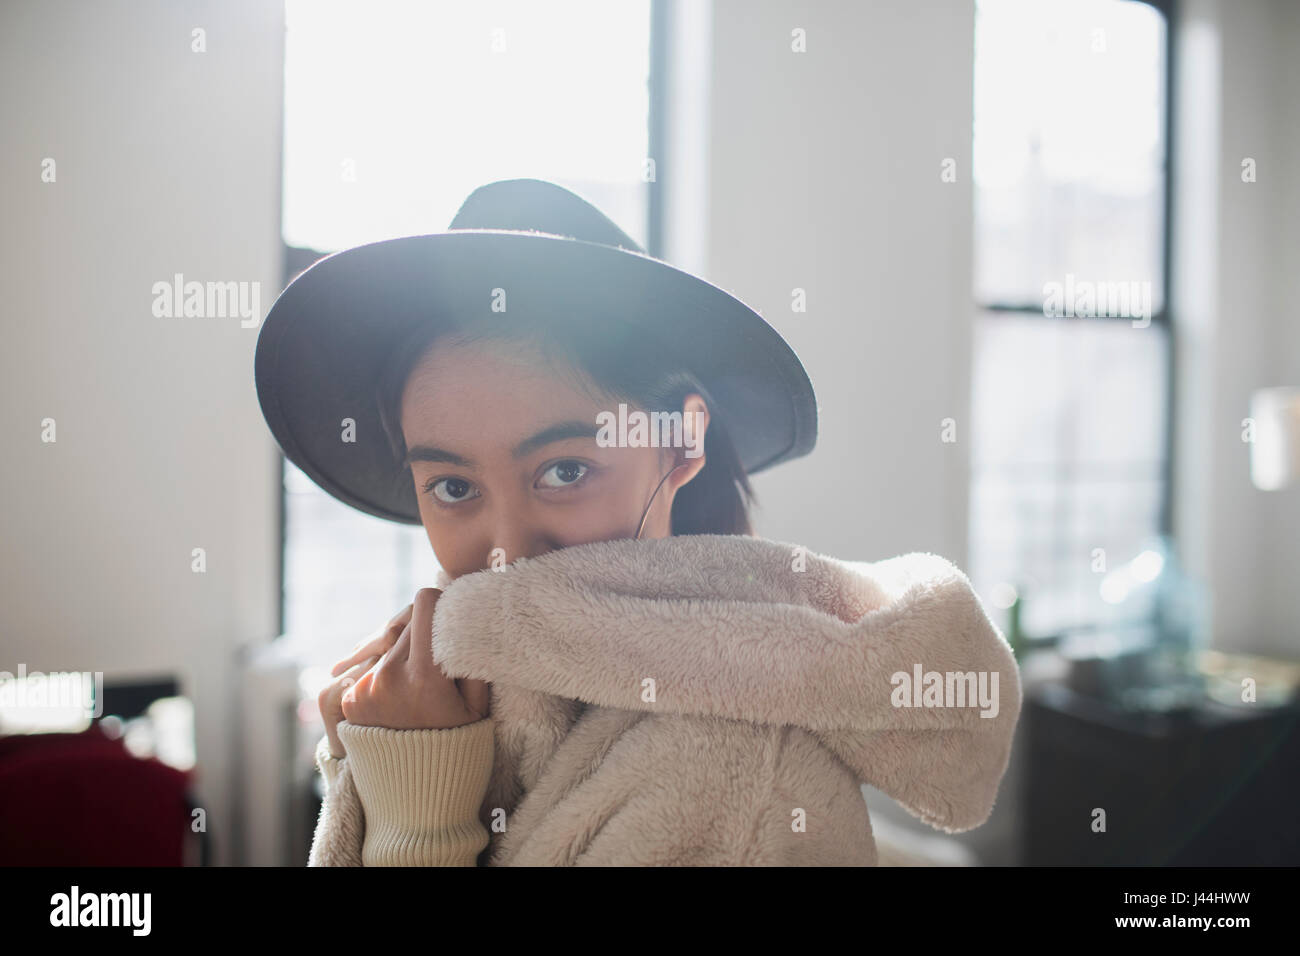 A young woman wearing a hat and robe - Stock Image